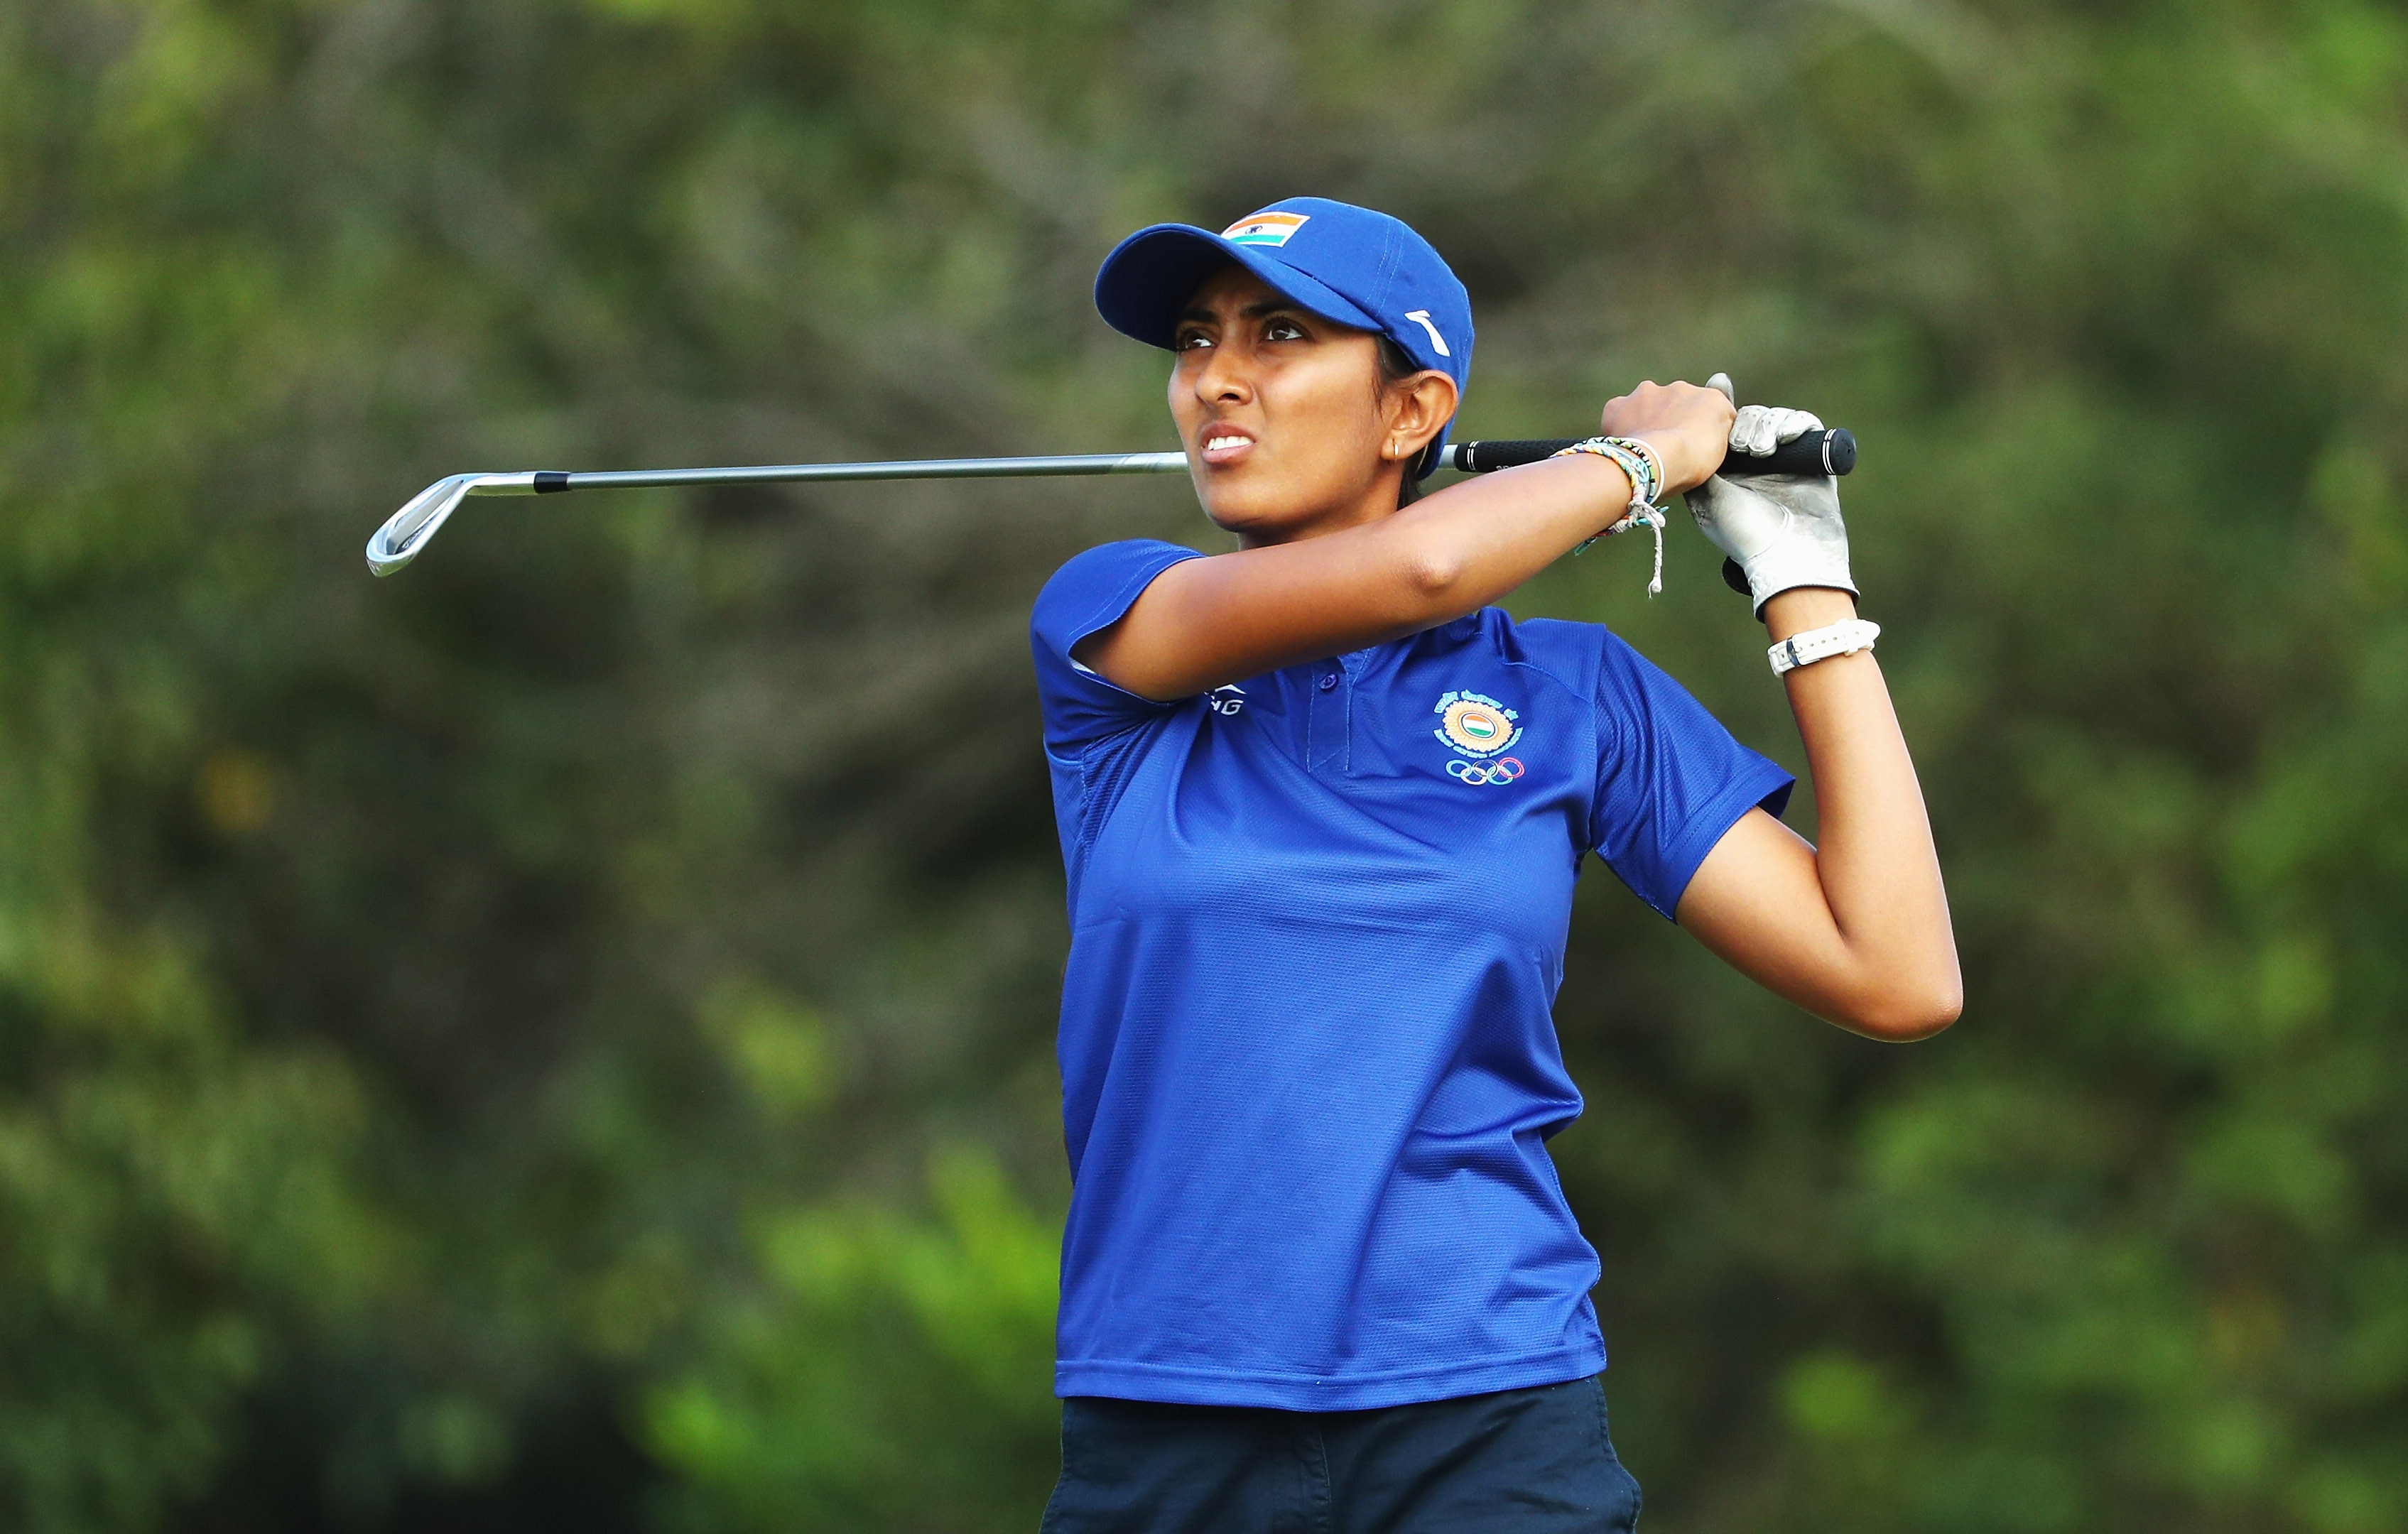 Aditi Ashok of India watches her tee shot on the fourth hole during the second round of women's golf at the Rio Olympics.